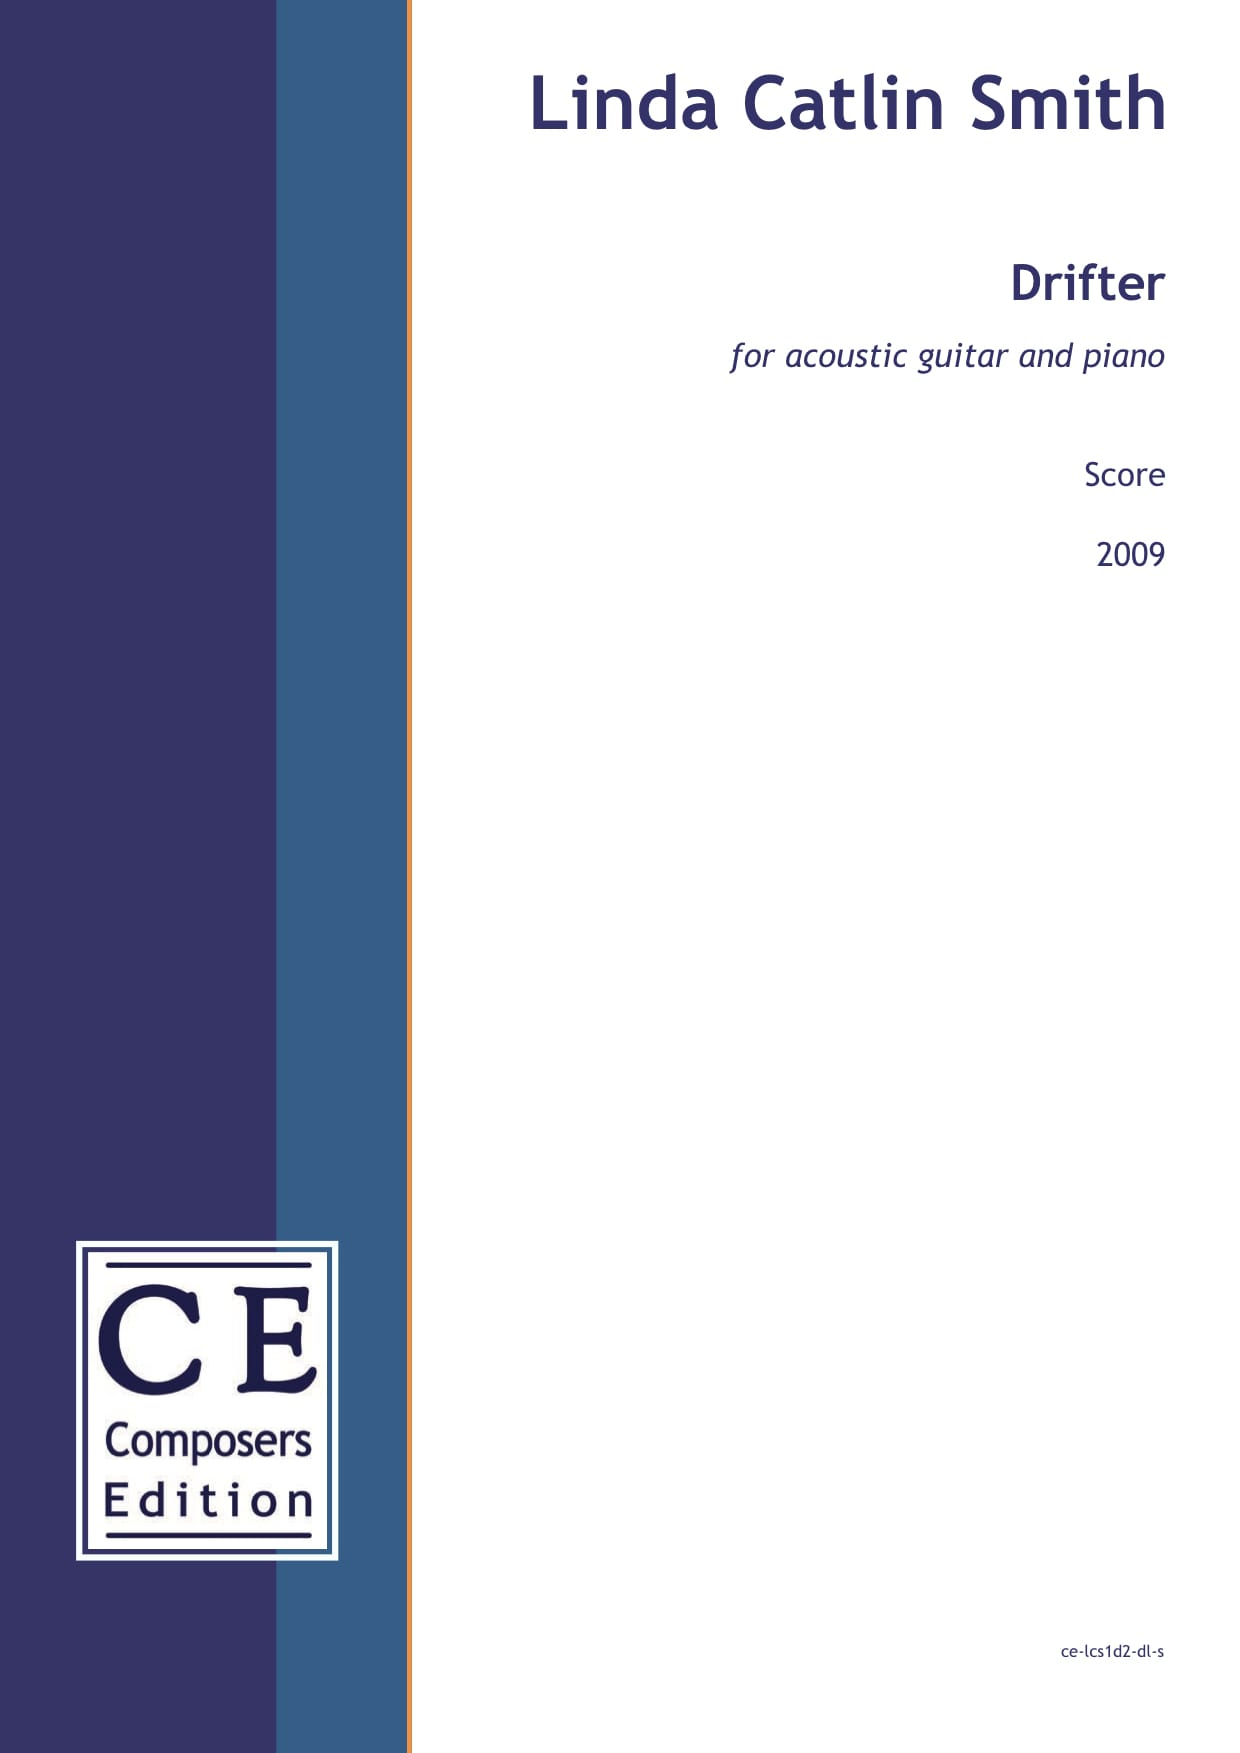 Linda Catlin Smith: Drifter (version for acoustic guitar) for acoustic guitar and piano